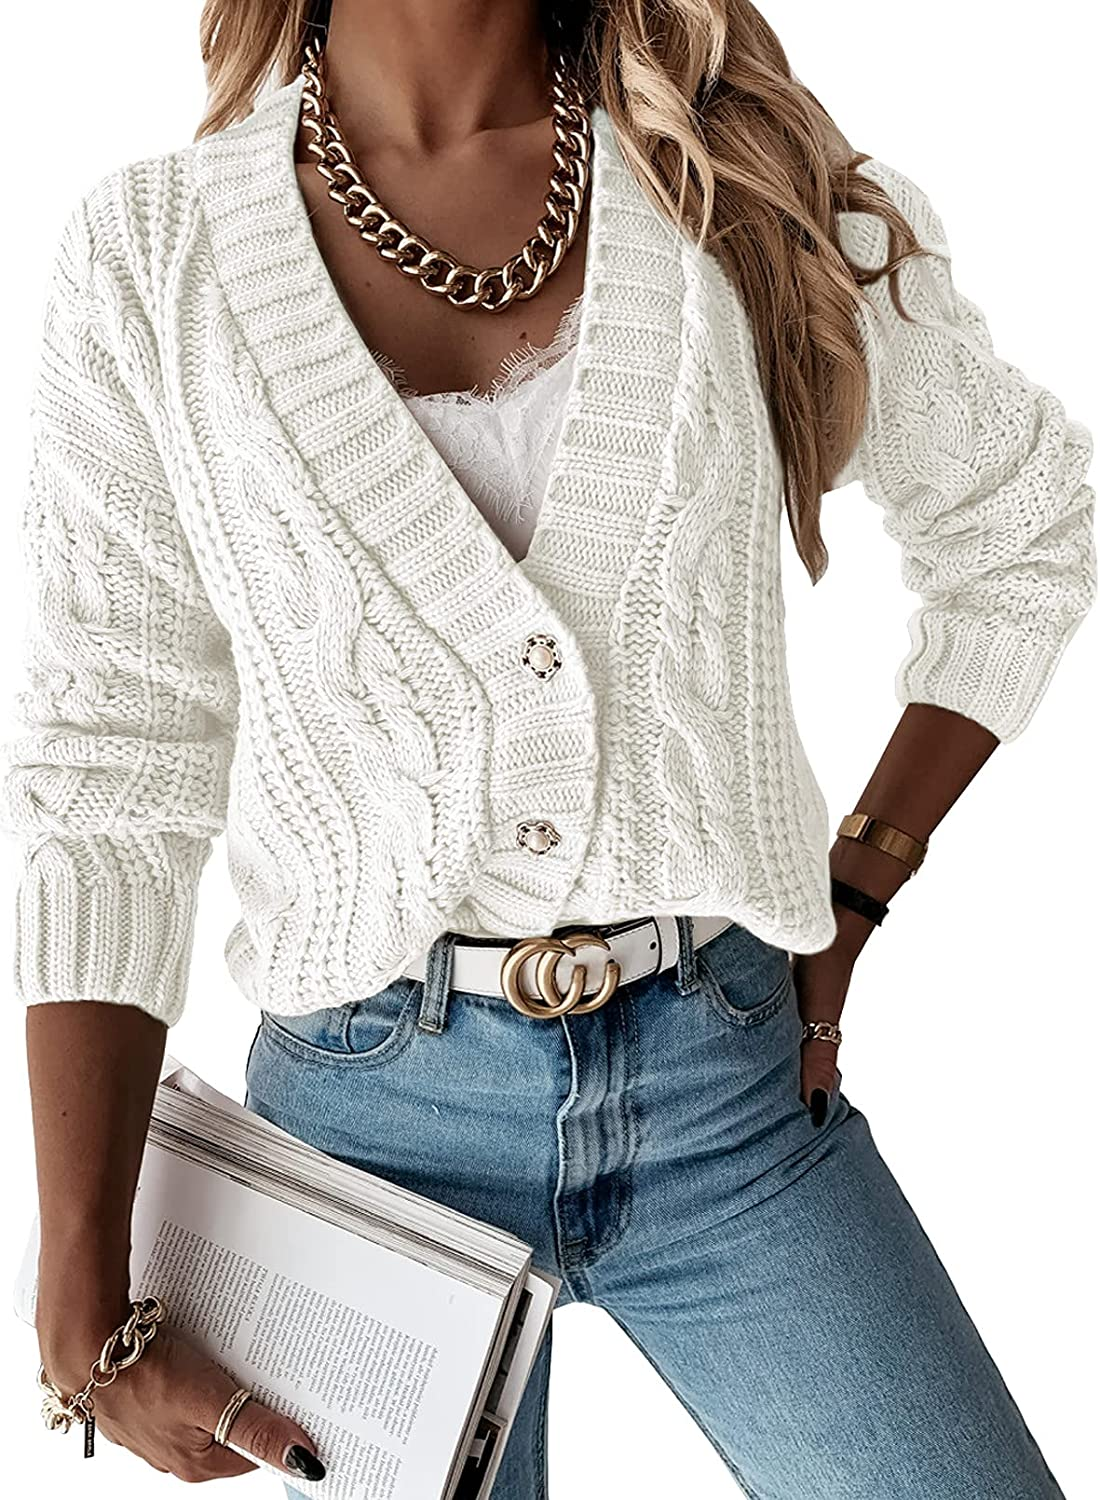 Astylish Womens Open Front Cardigan Knit Sweater Outerwear Coat with Button